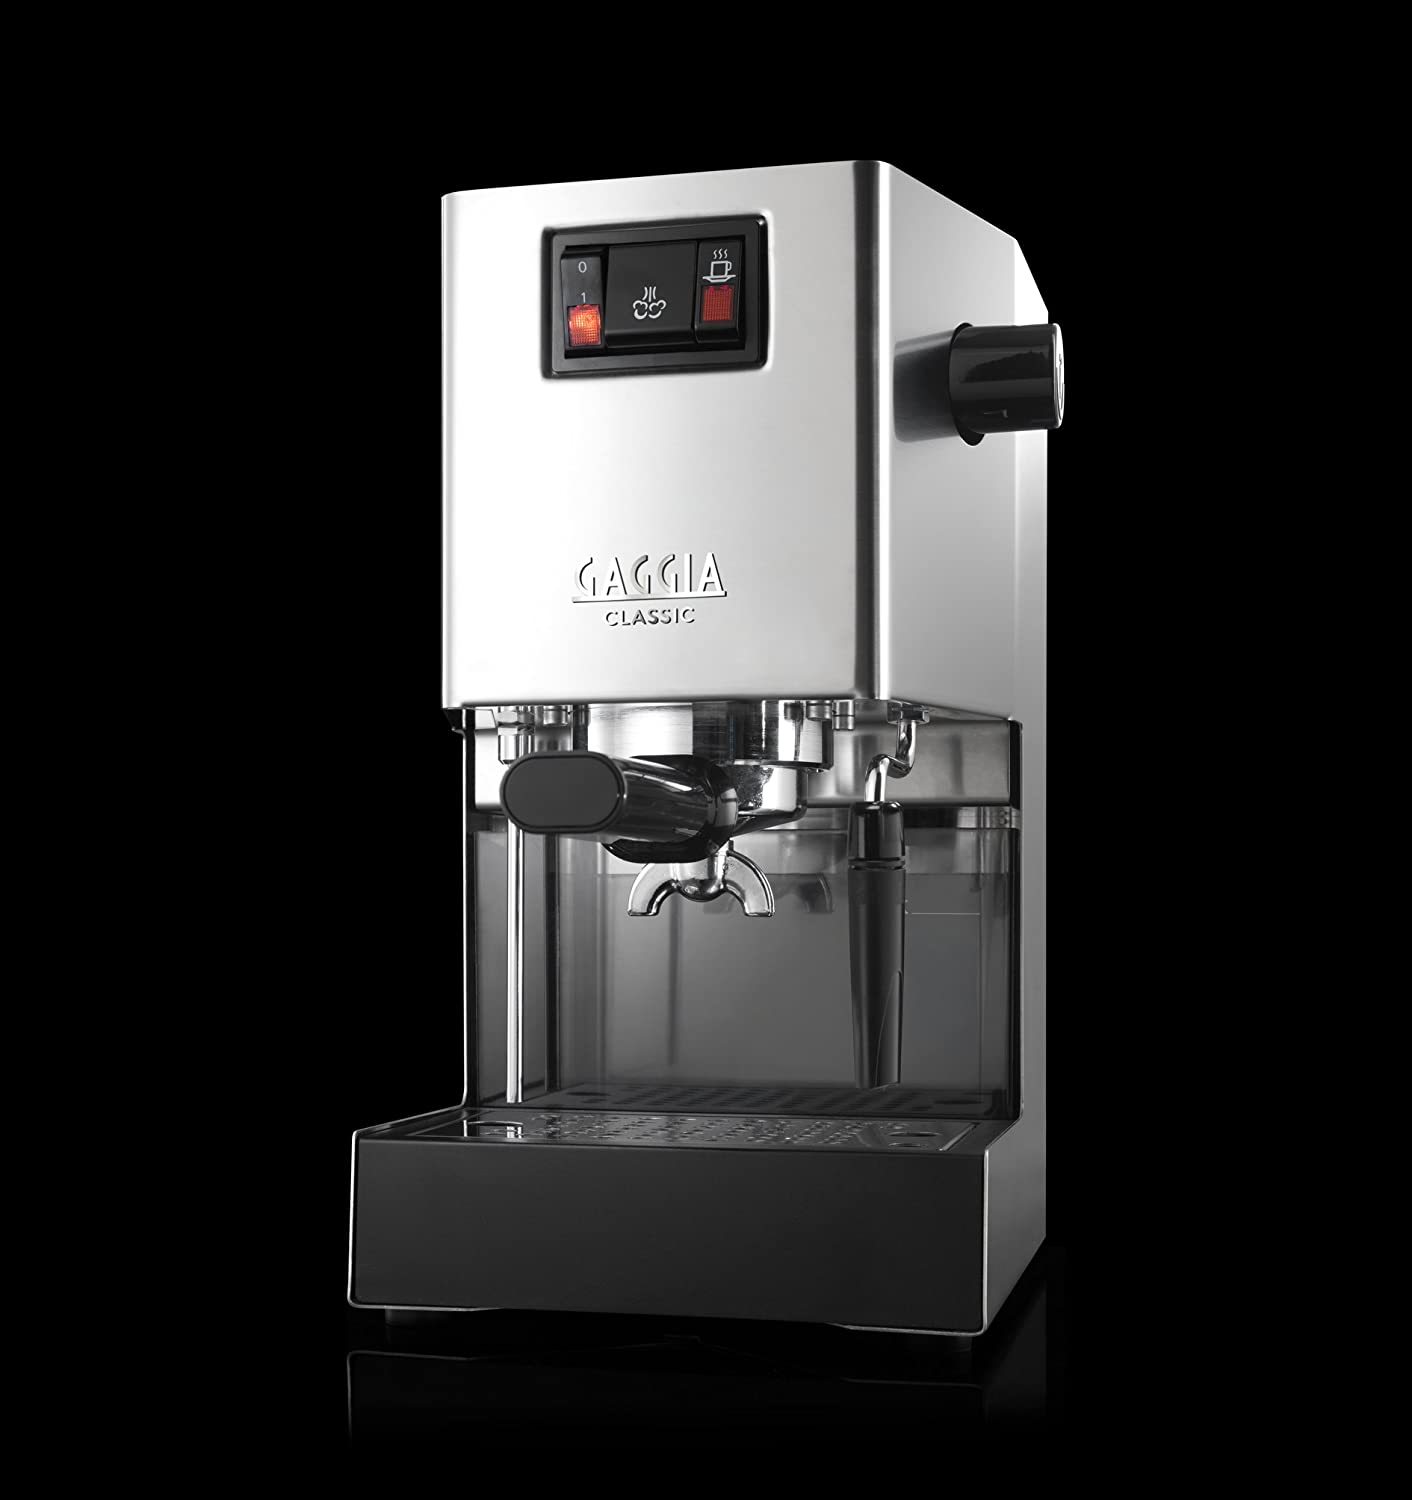 Electronic Real Coffee Machine gaggia classic ri8161 coffee machine with professional filter holder stainless steel body amazon co uk kitchen home